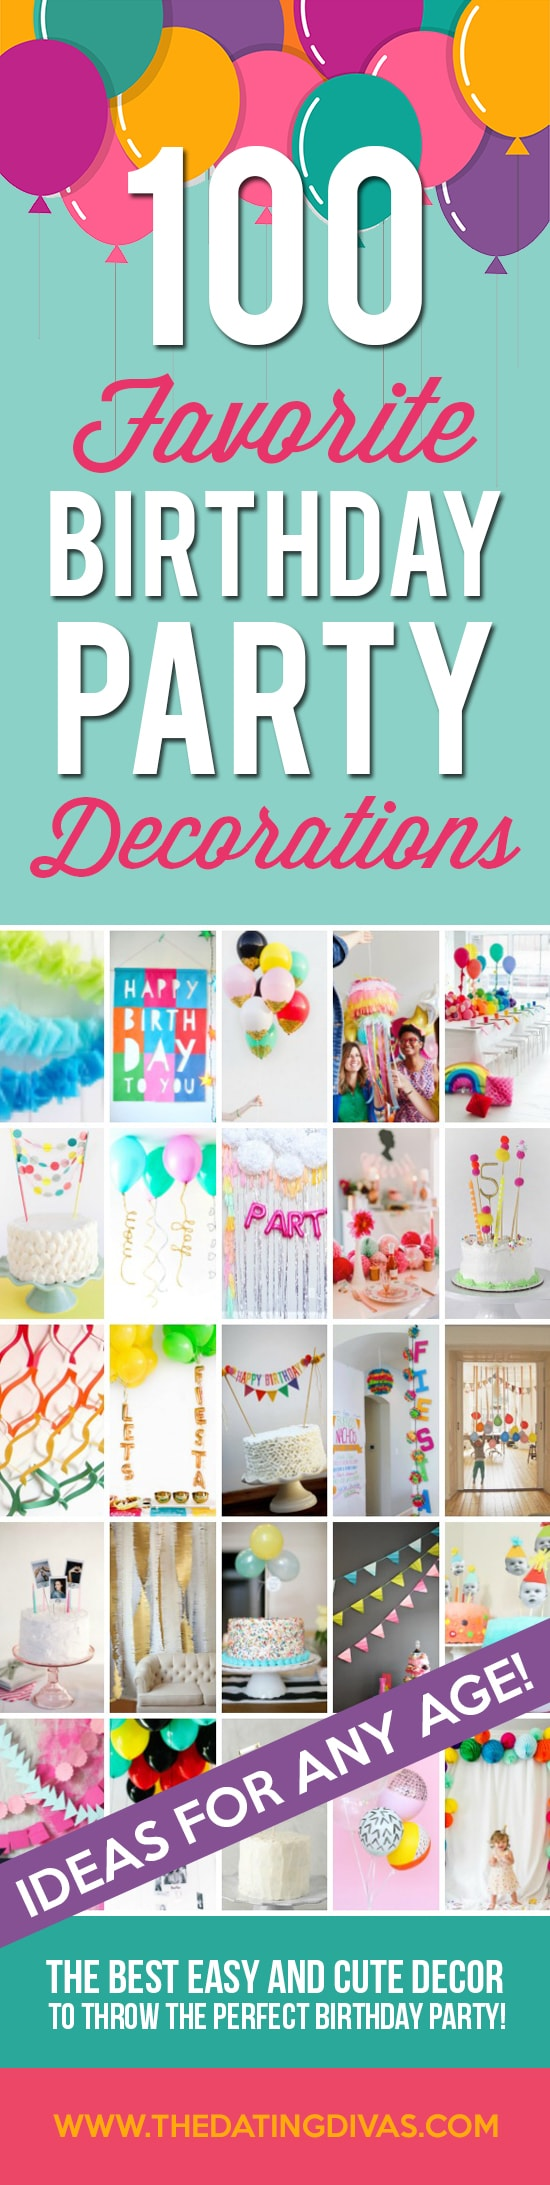 100 Of The Best Birthday Party Decoration Ideas Banner